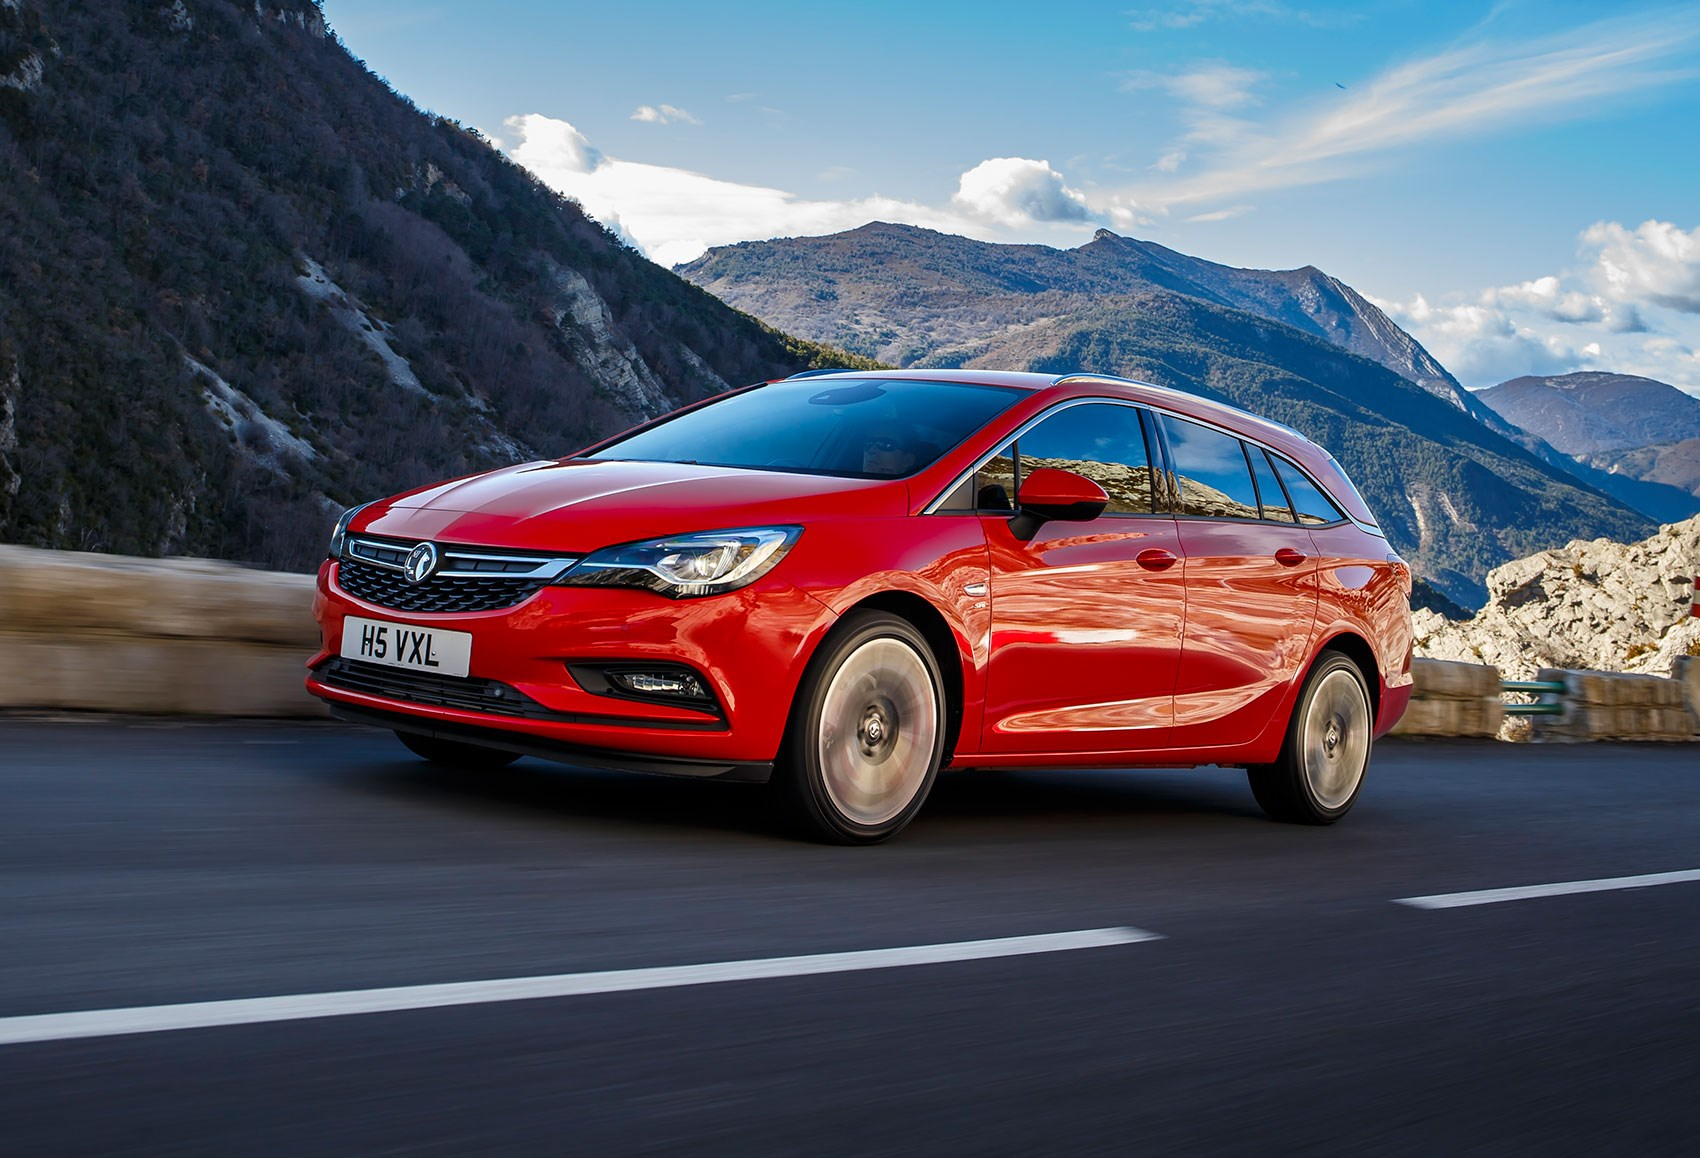 Used Car For Lease >> Vauxhall Astra Sports Tourer Estate 1.6T 200ps Elite Nav (2016) review | CAR Magazine